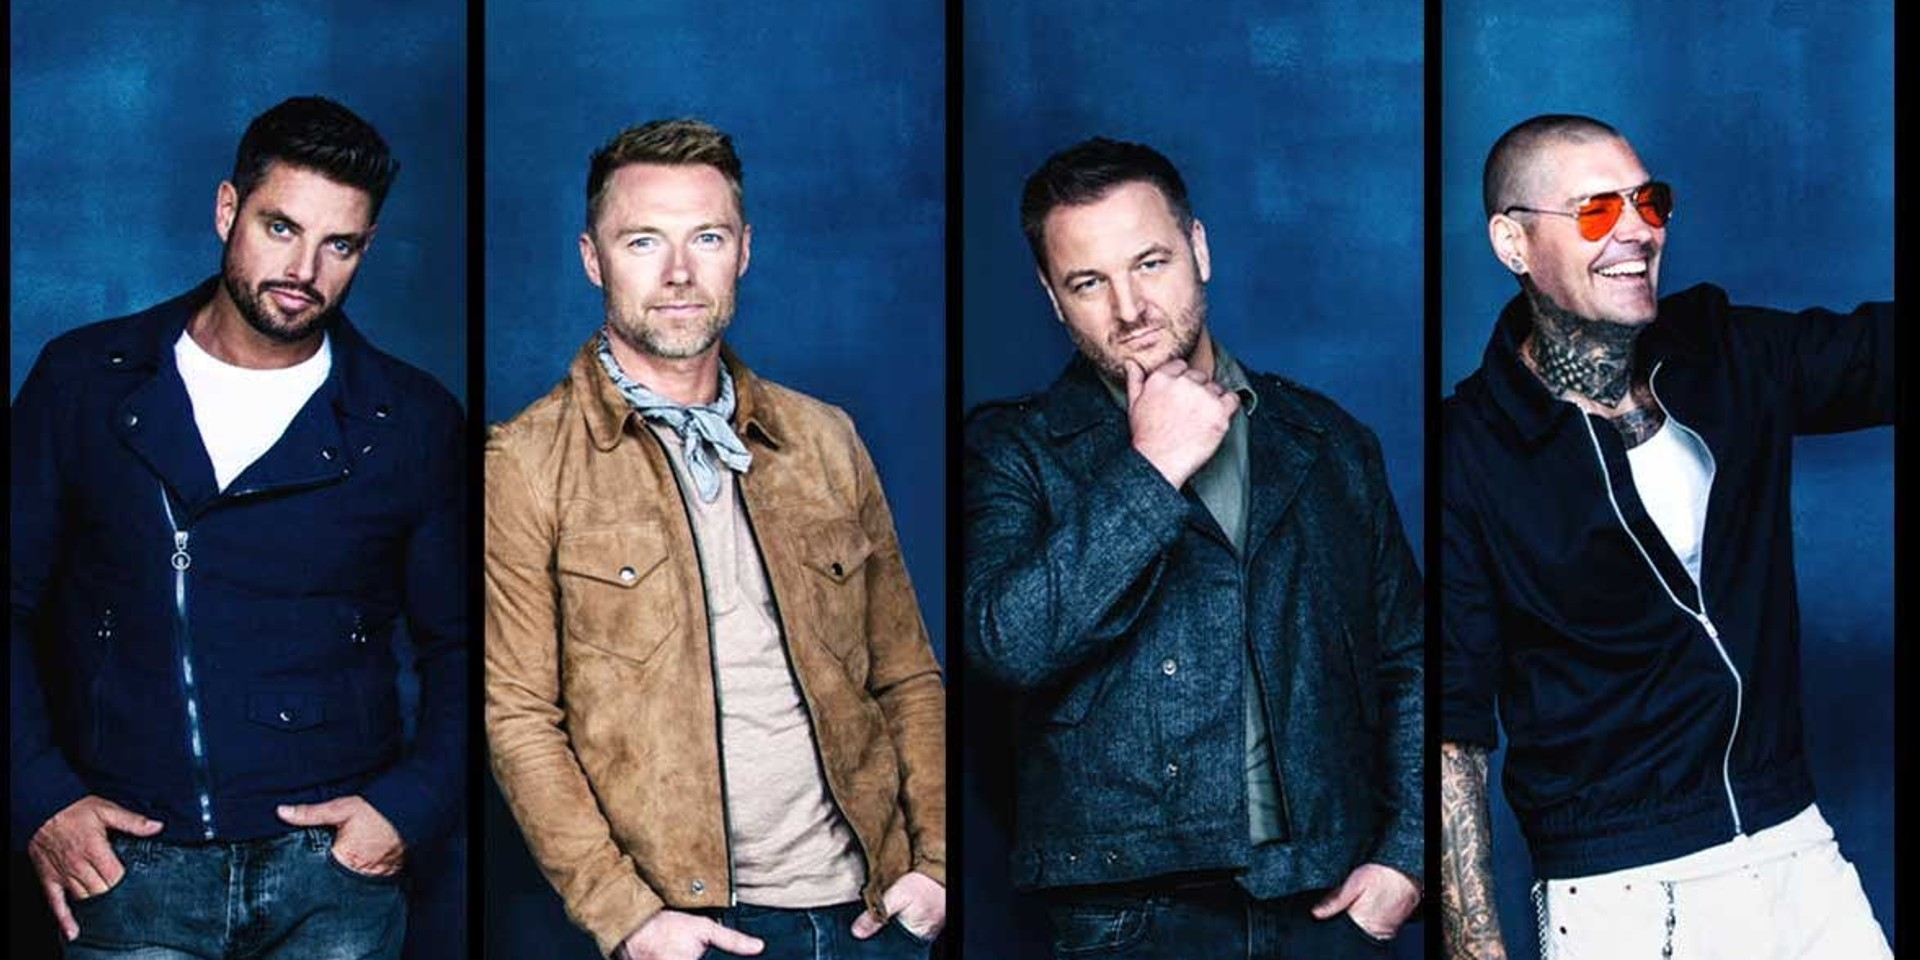 """""""We don't want to just fizzle out"""": An interview with Ronan Keating of Boyzone"""